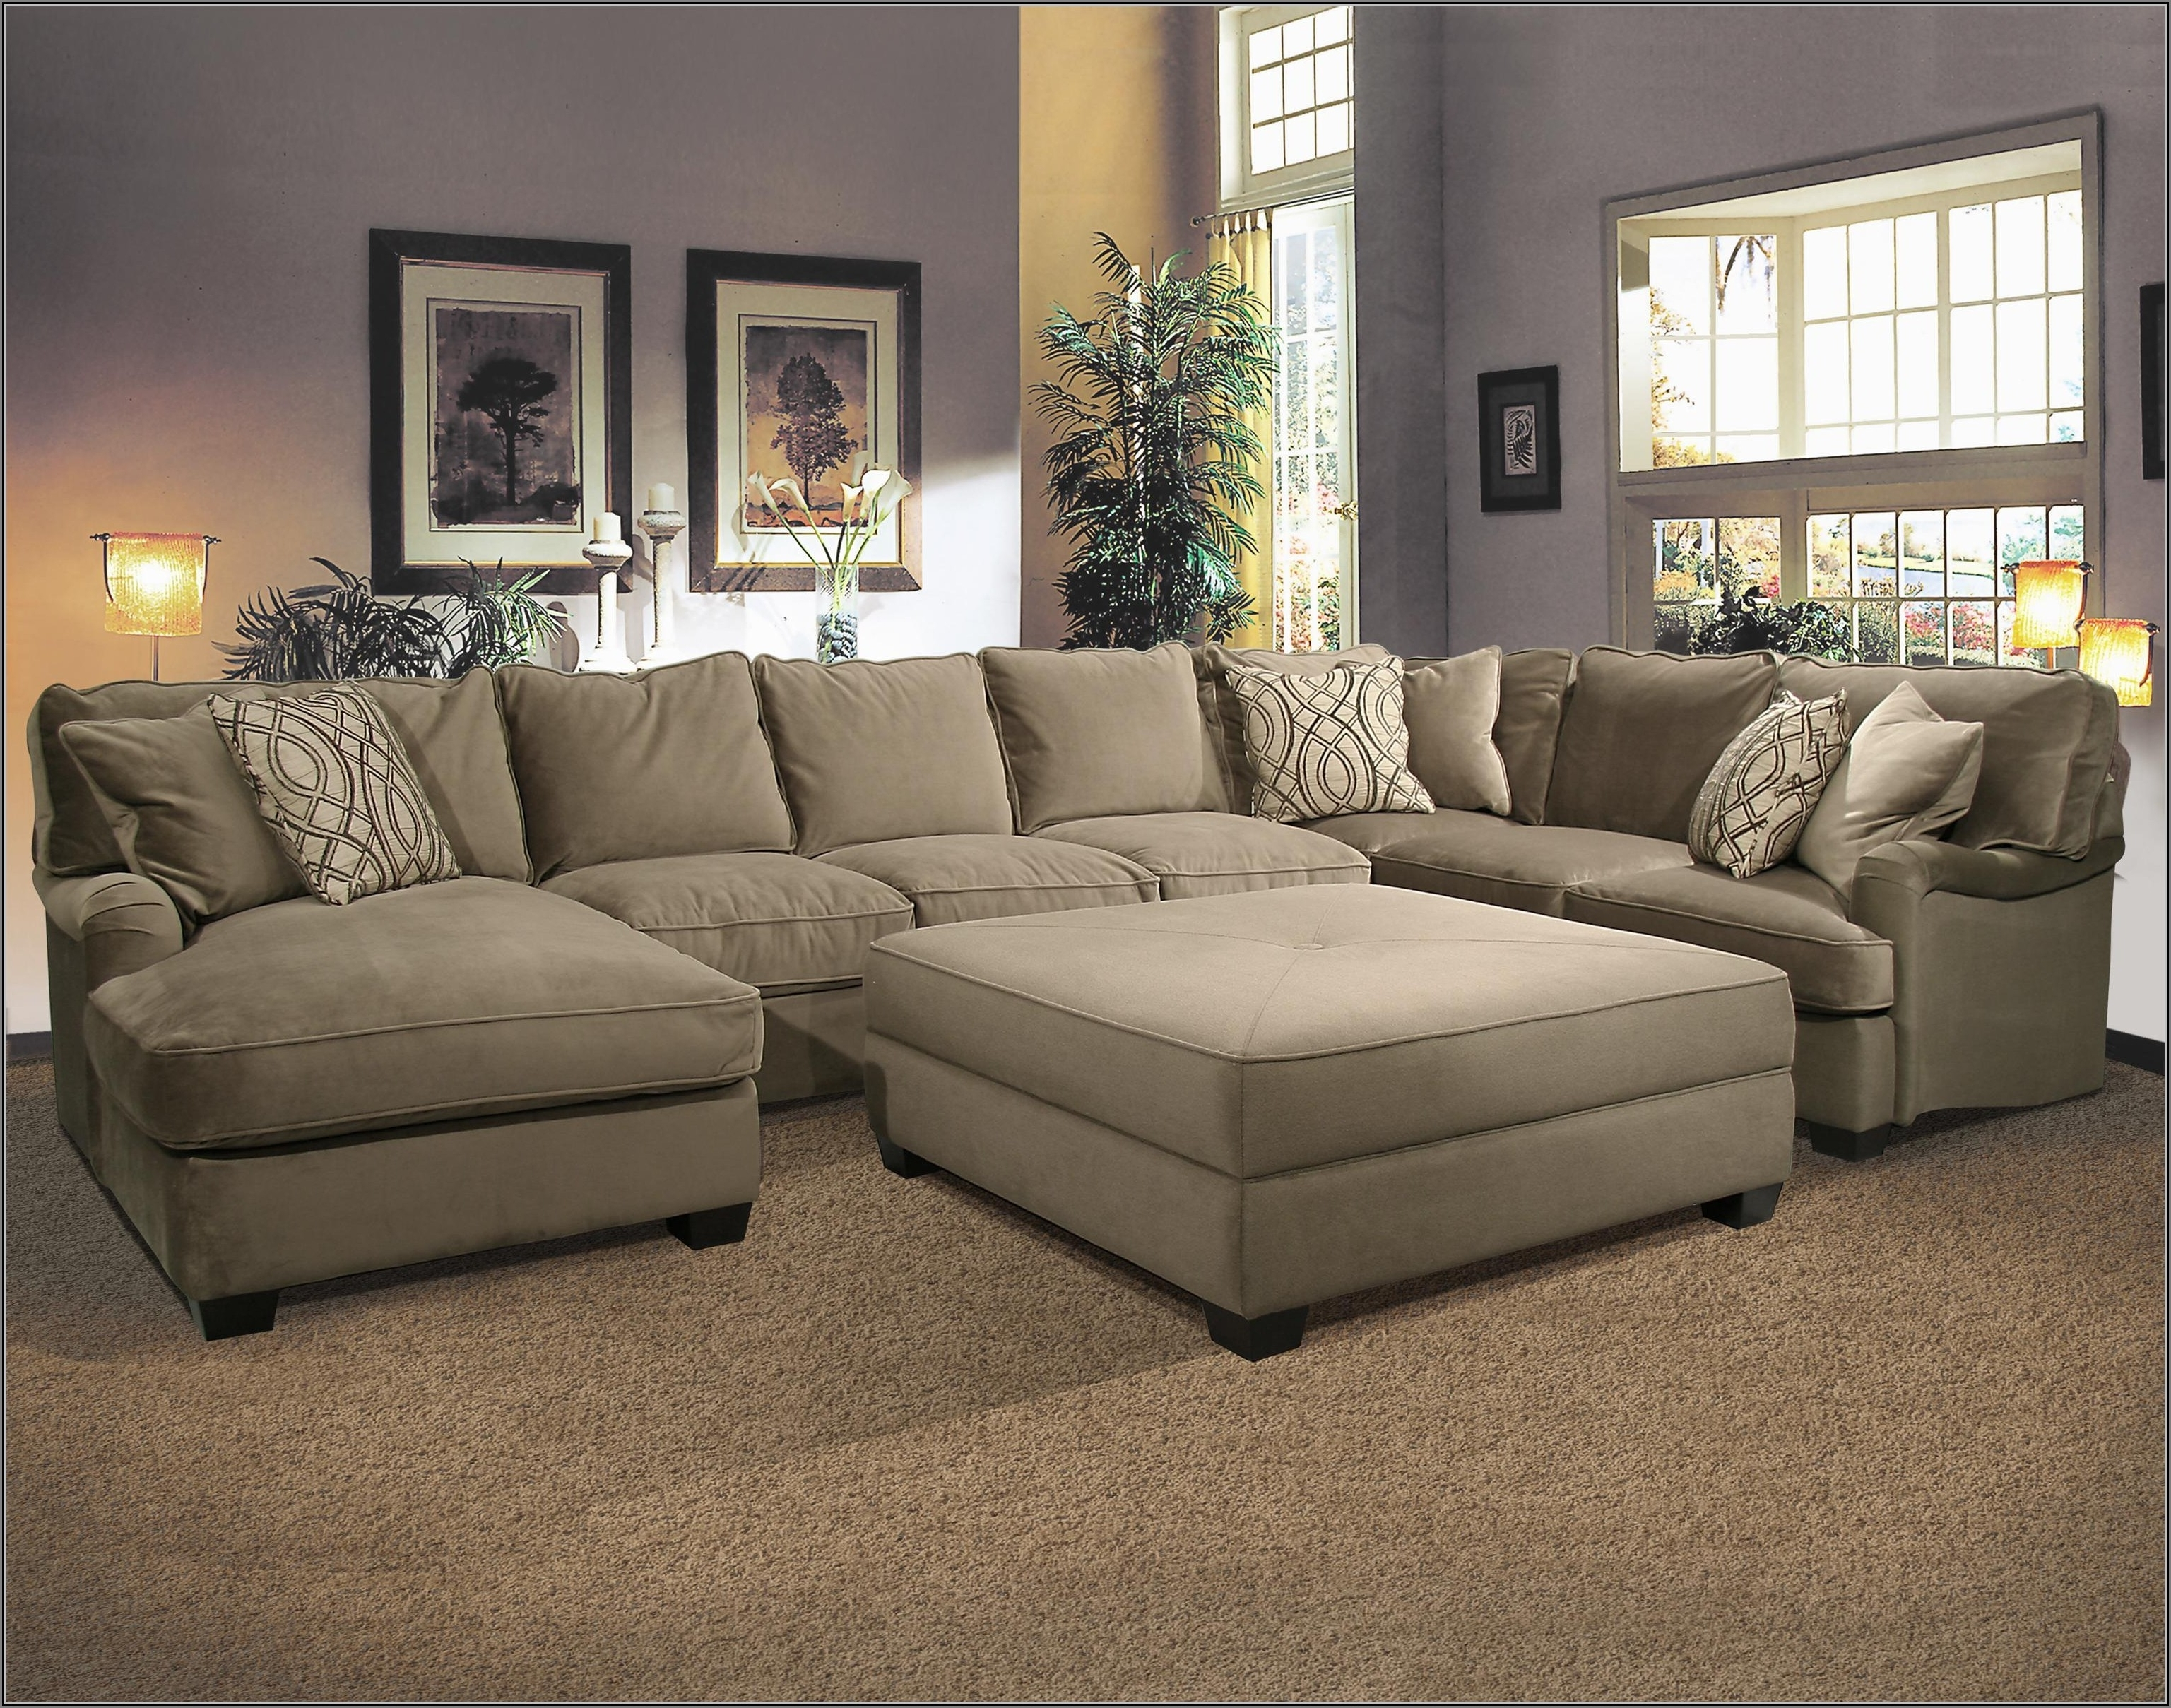 Most Popular Sectional Sofa With Large Ottoman Hotelsbacau Com Intended For Intended For Sectional Sofas With Ottoman (View 5 of 15)